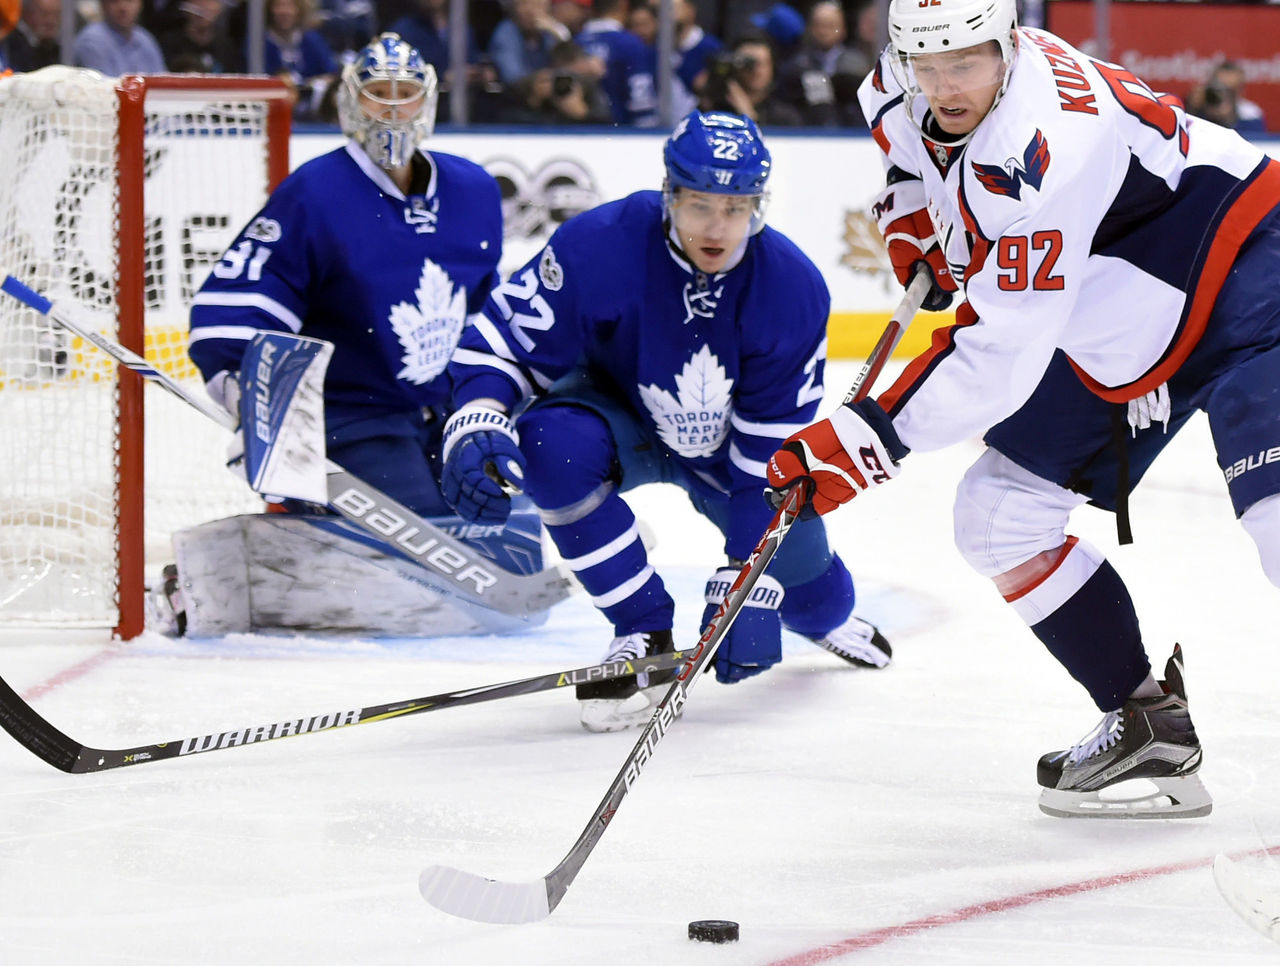 Cropped 2017 04 18t024028z 487306892 nocid rtrmadp 3 nhl stanley cup playoffs washington capitals at toronto maple leafs